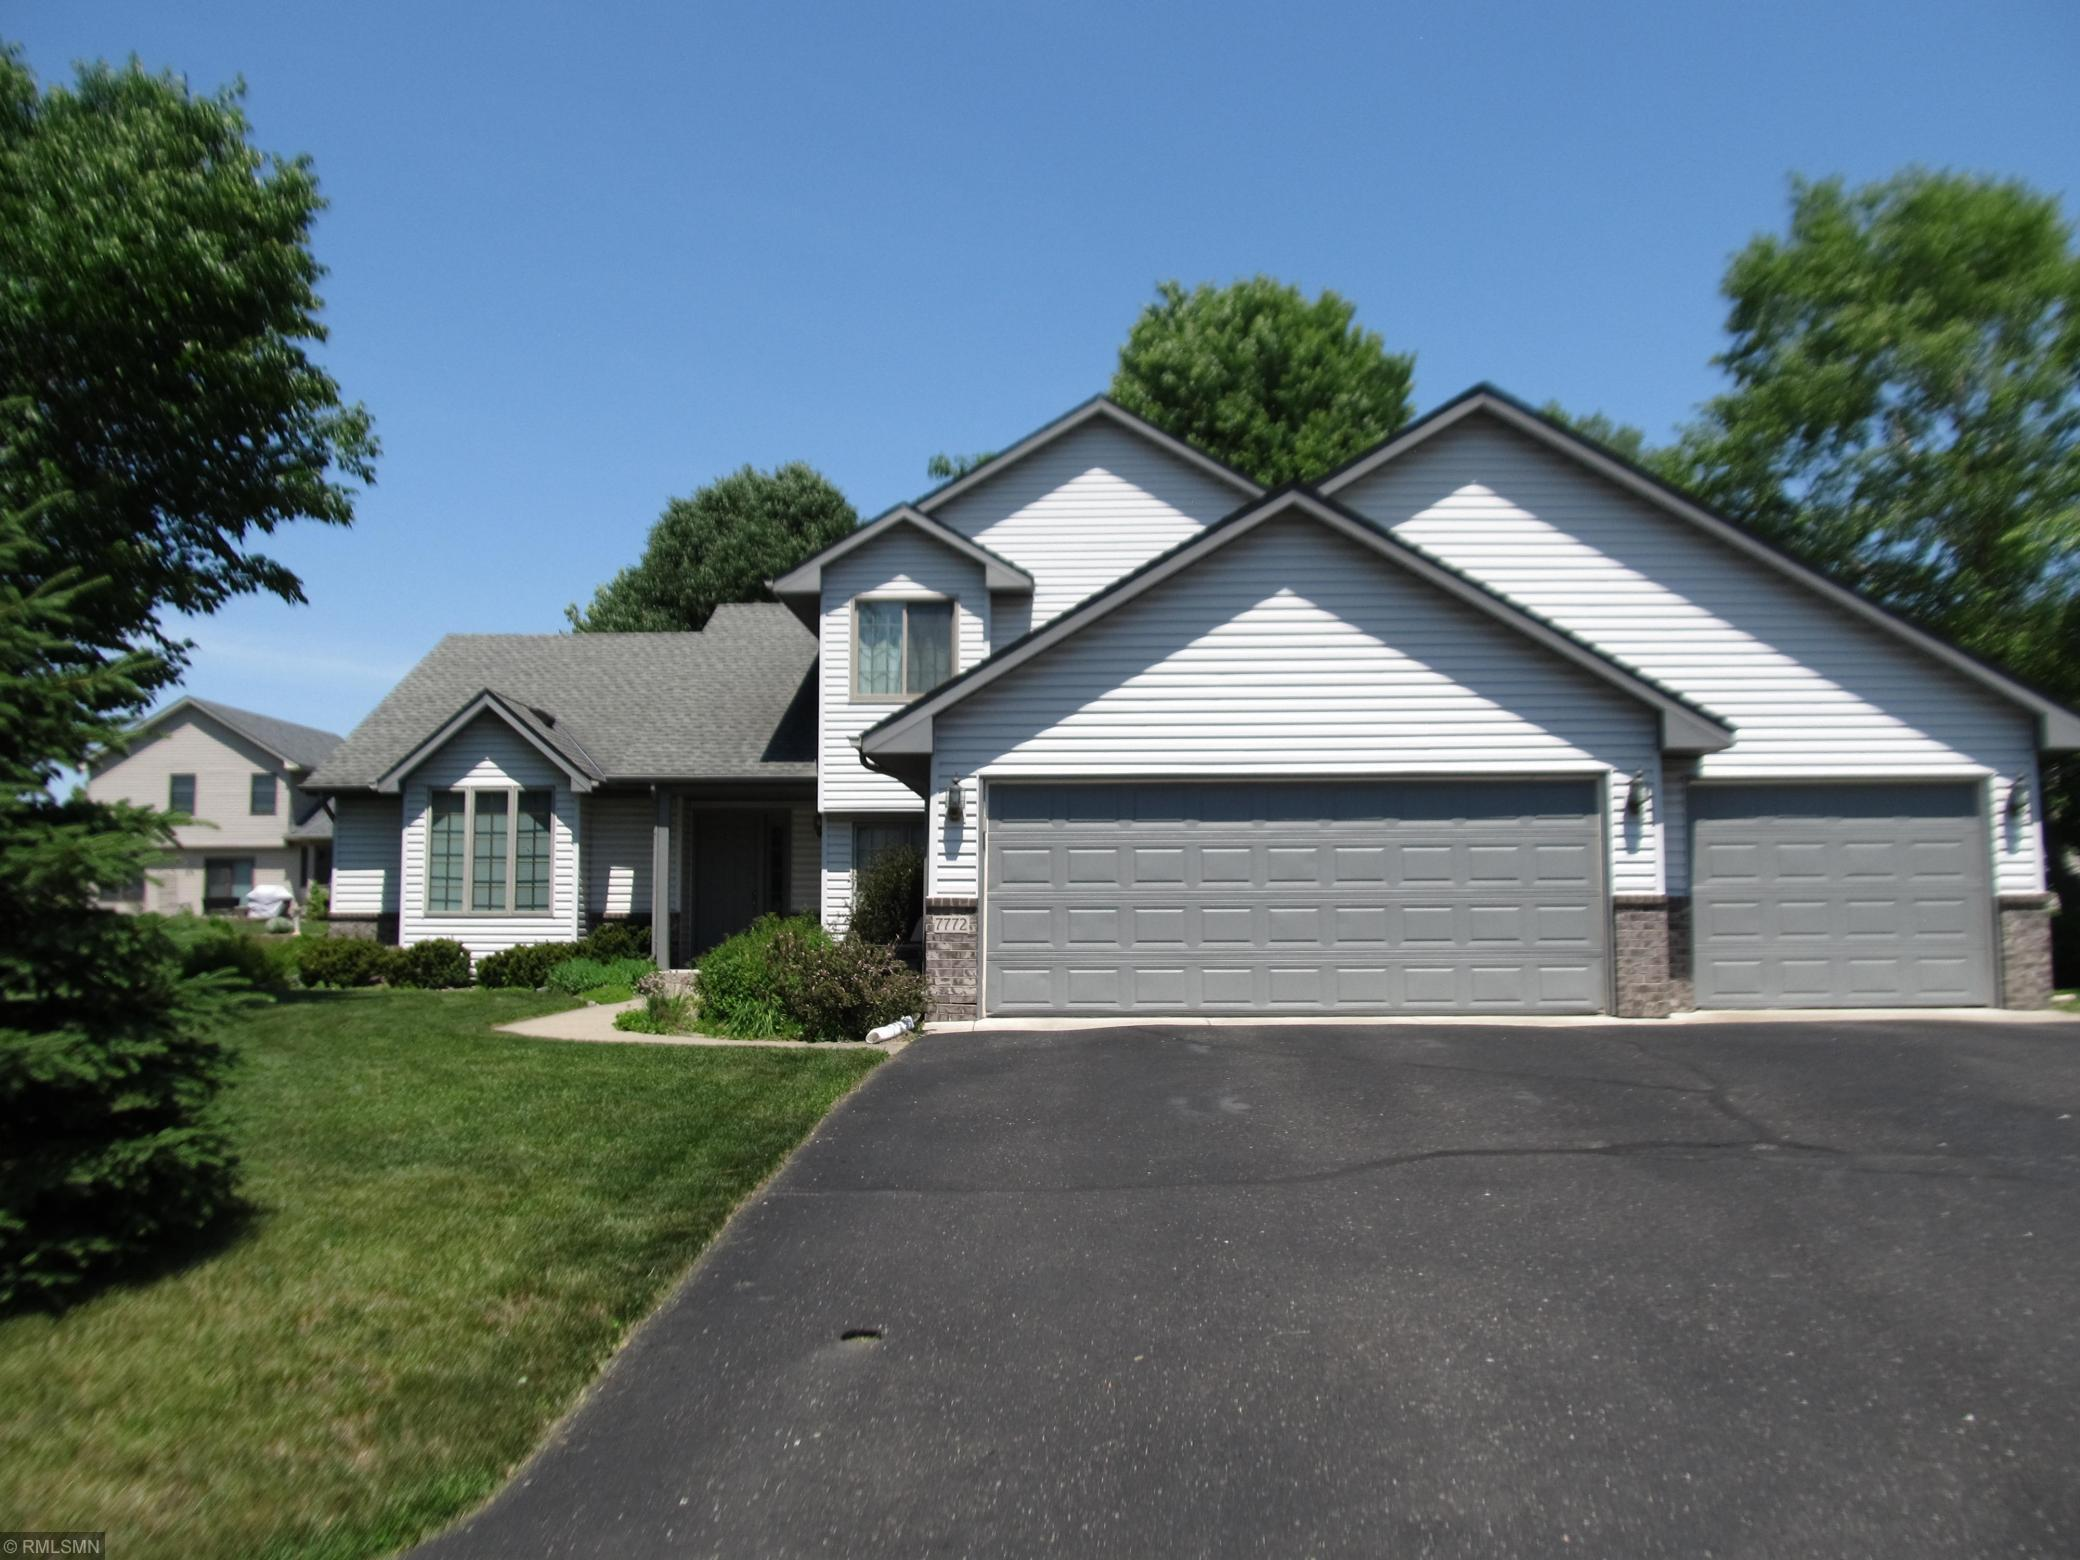 7772 Upper 45th N Property Photo - Oakdale, MN real estate listing